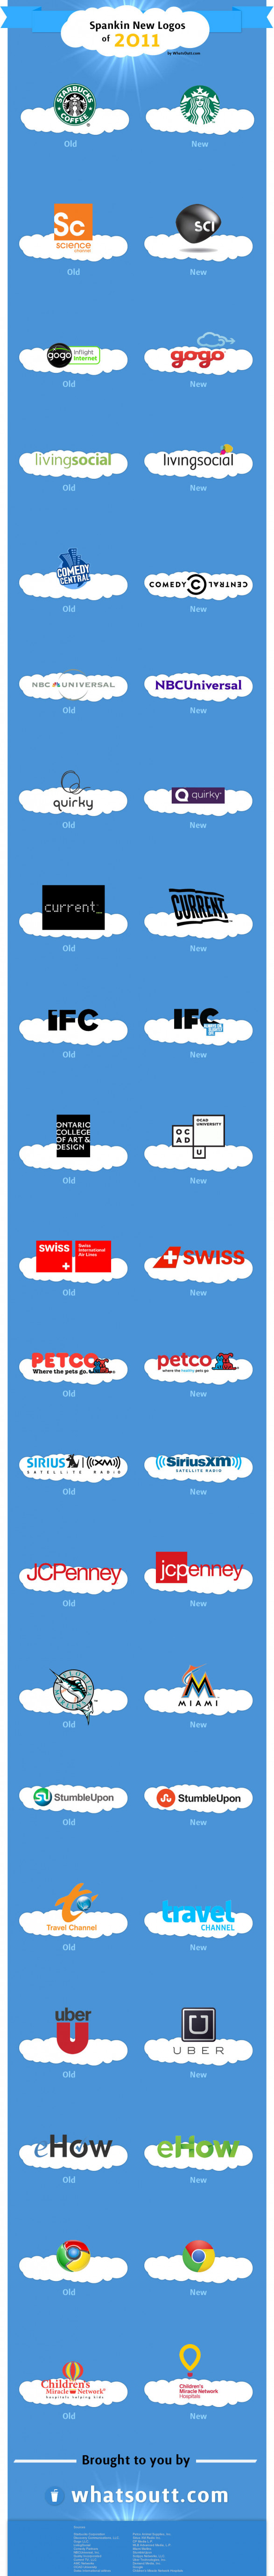 New Brand Logos in 2011 Infographic